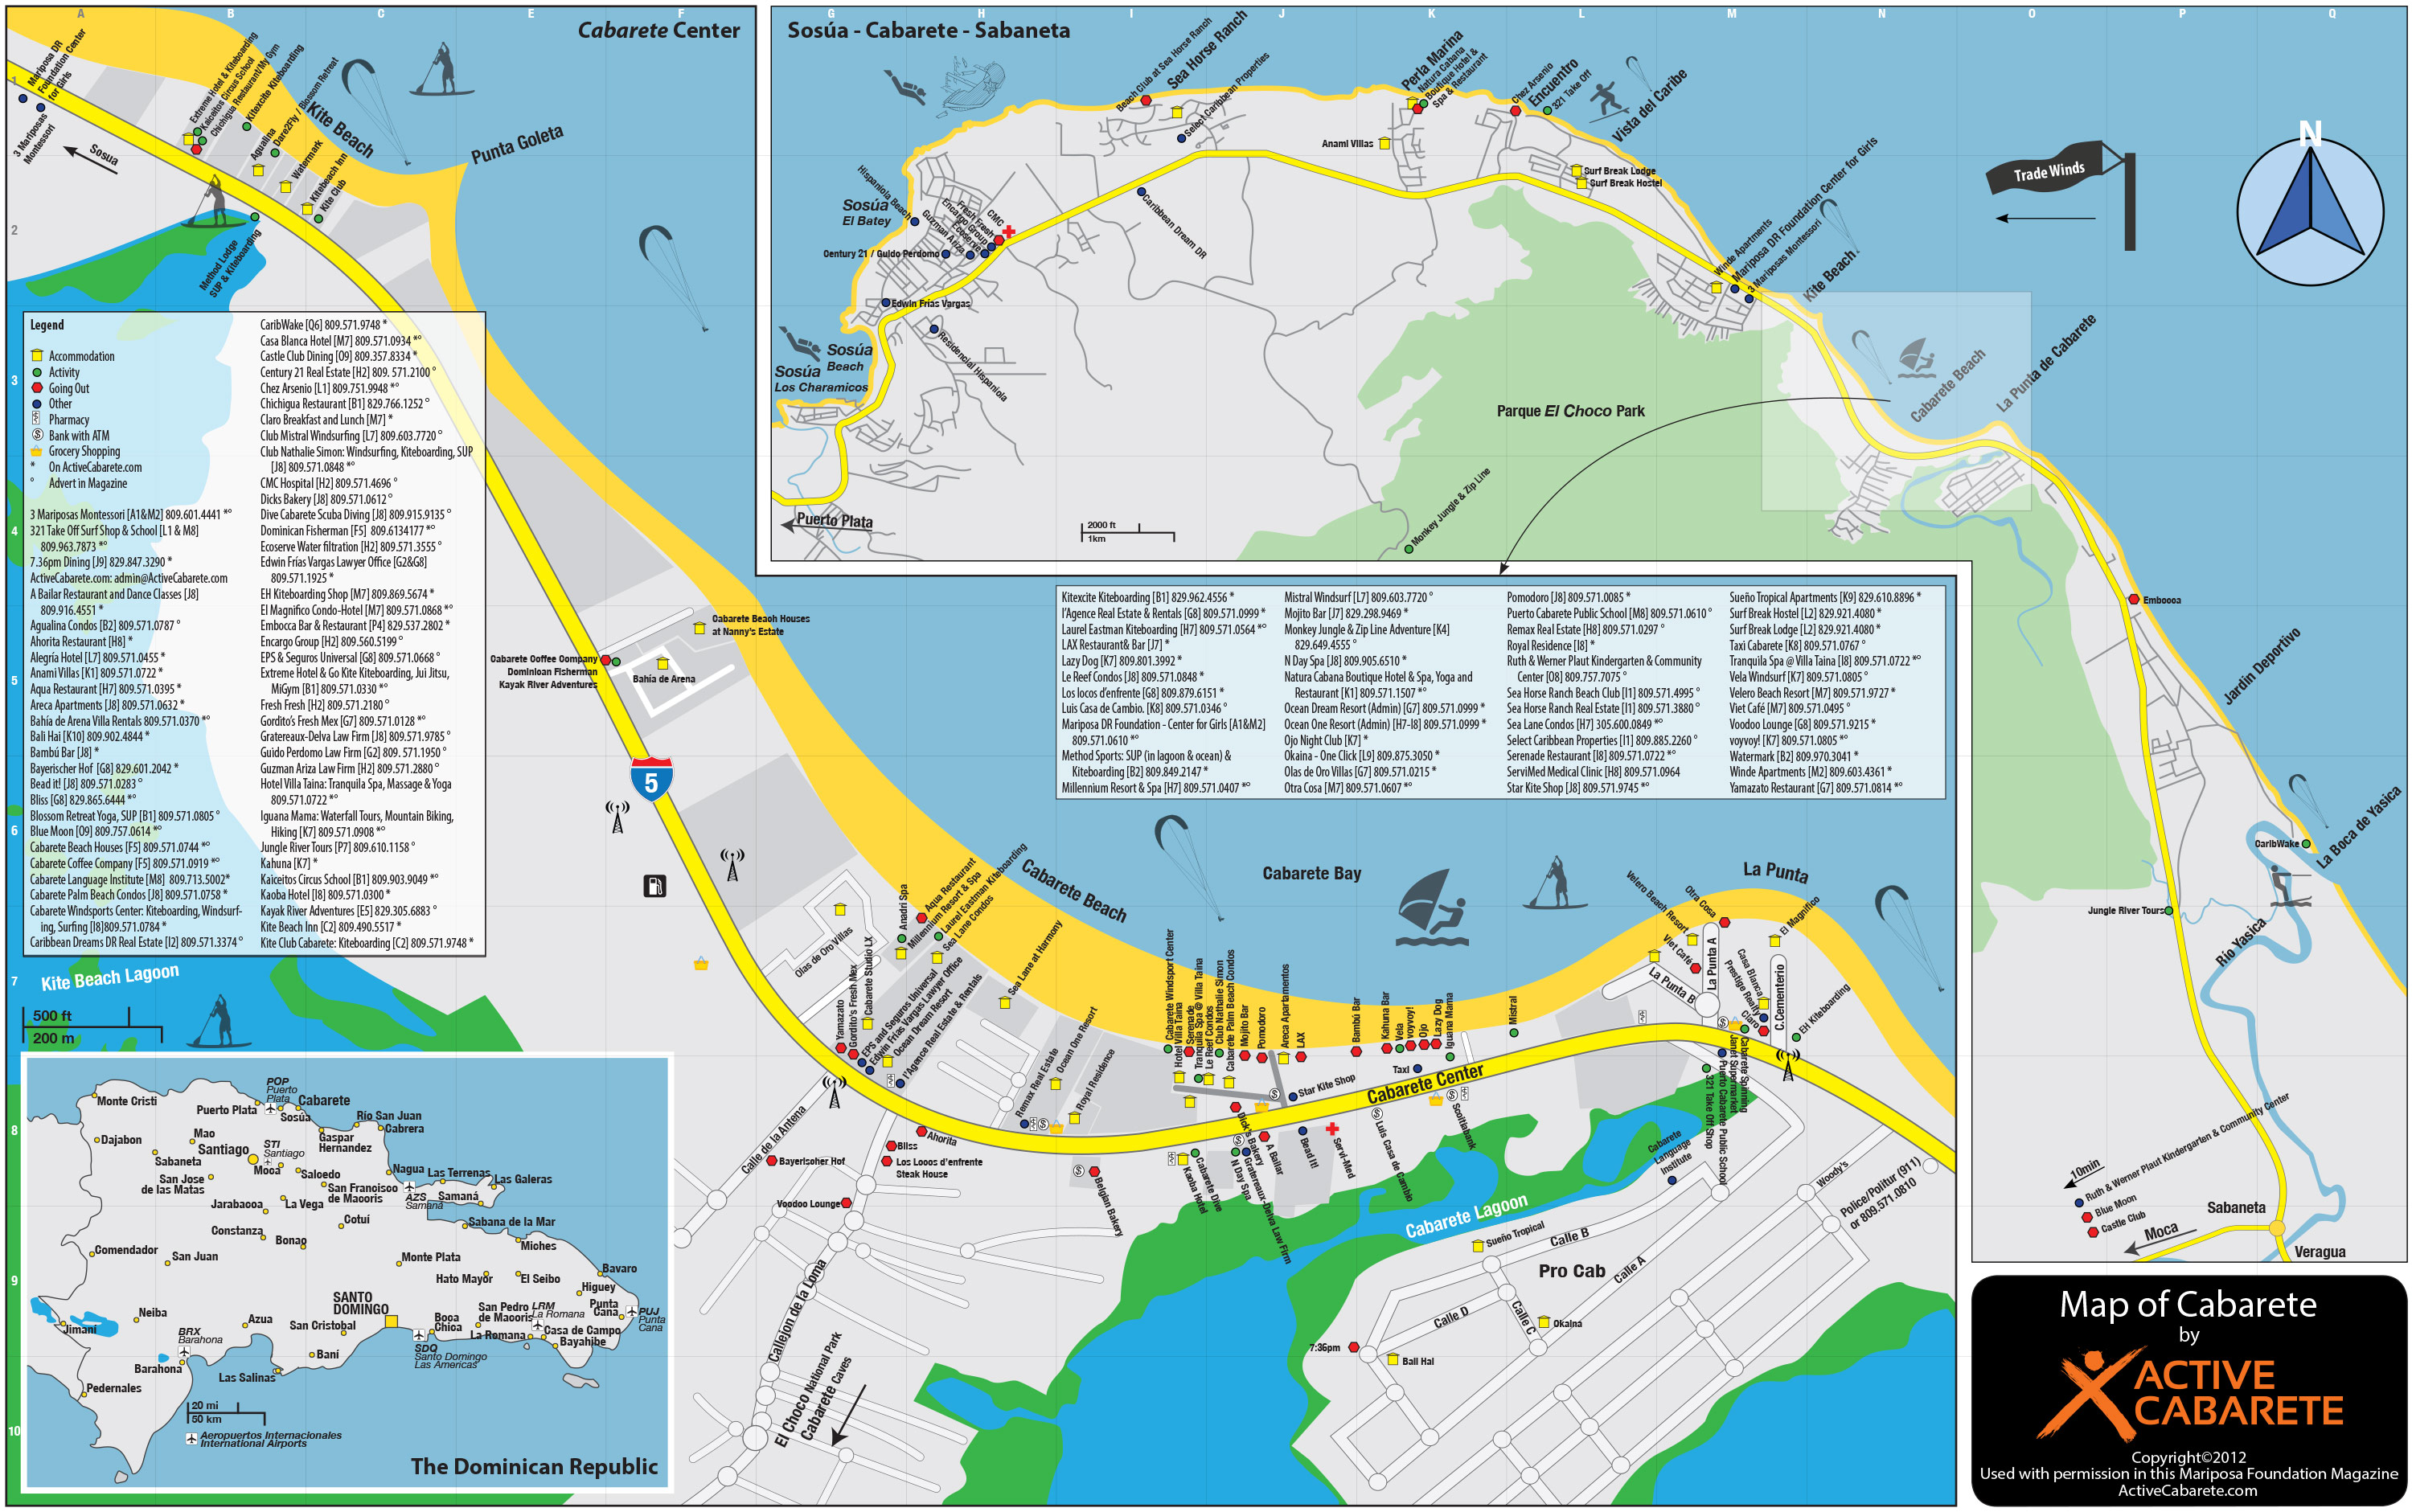 Active Cabarete - Maps of Cabarete, Dominican Republic